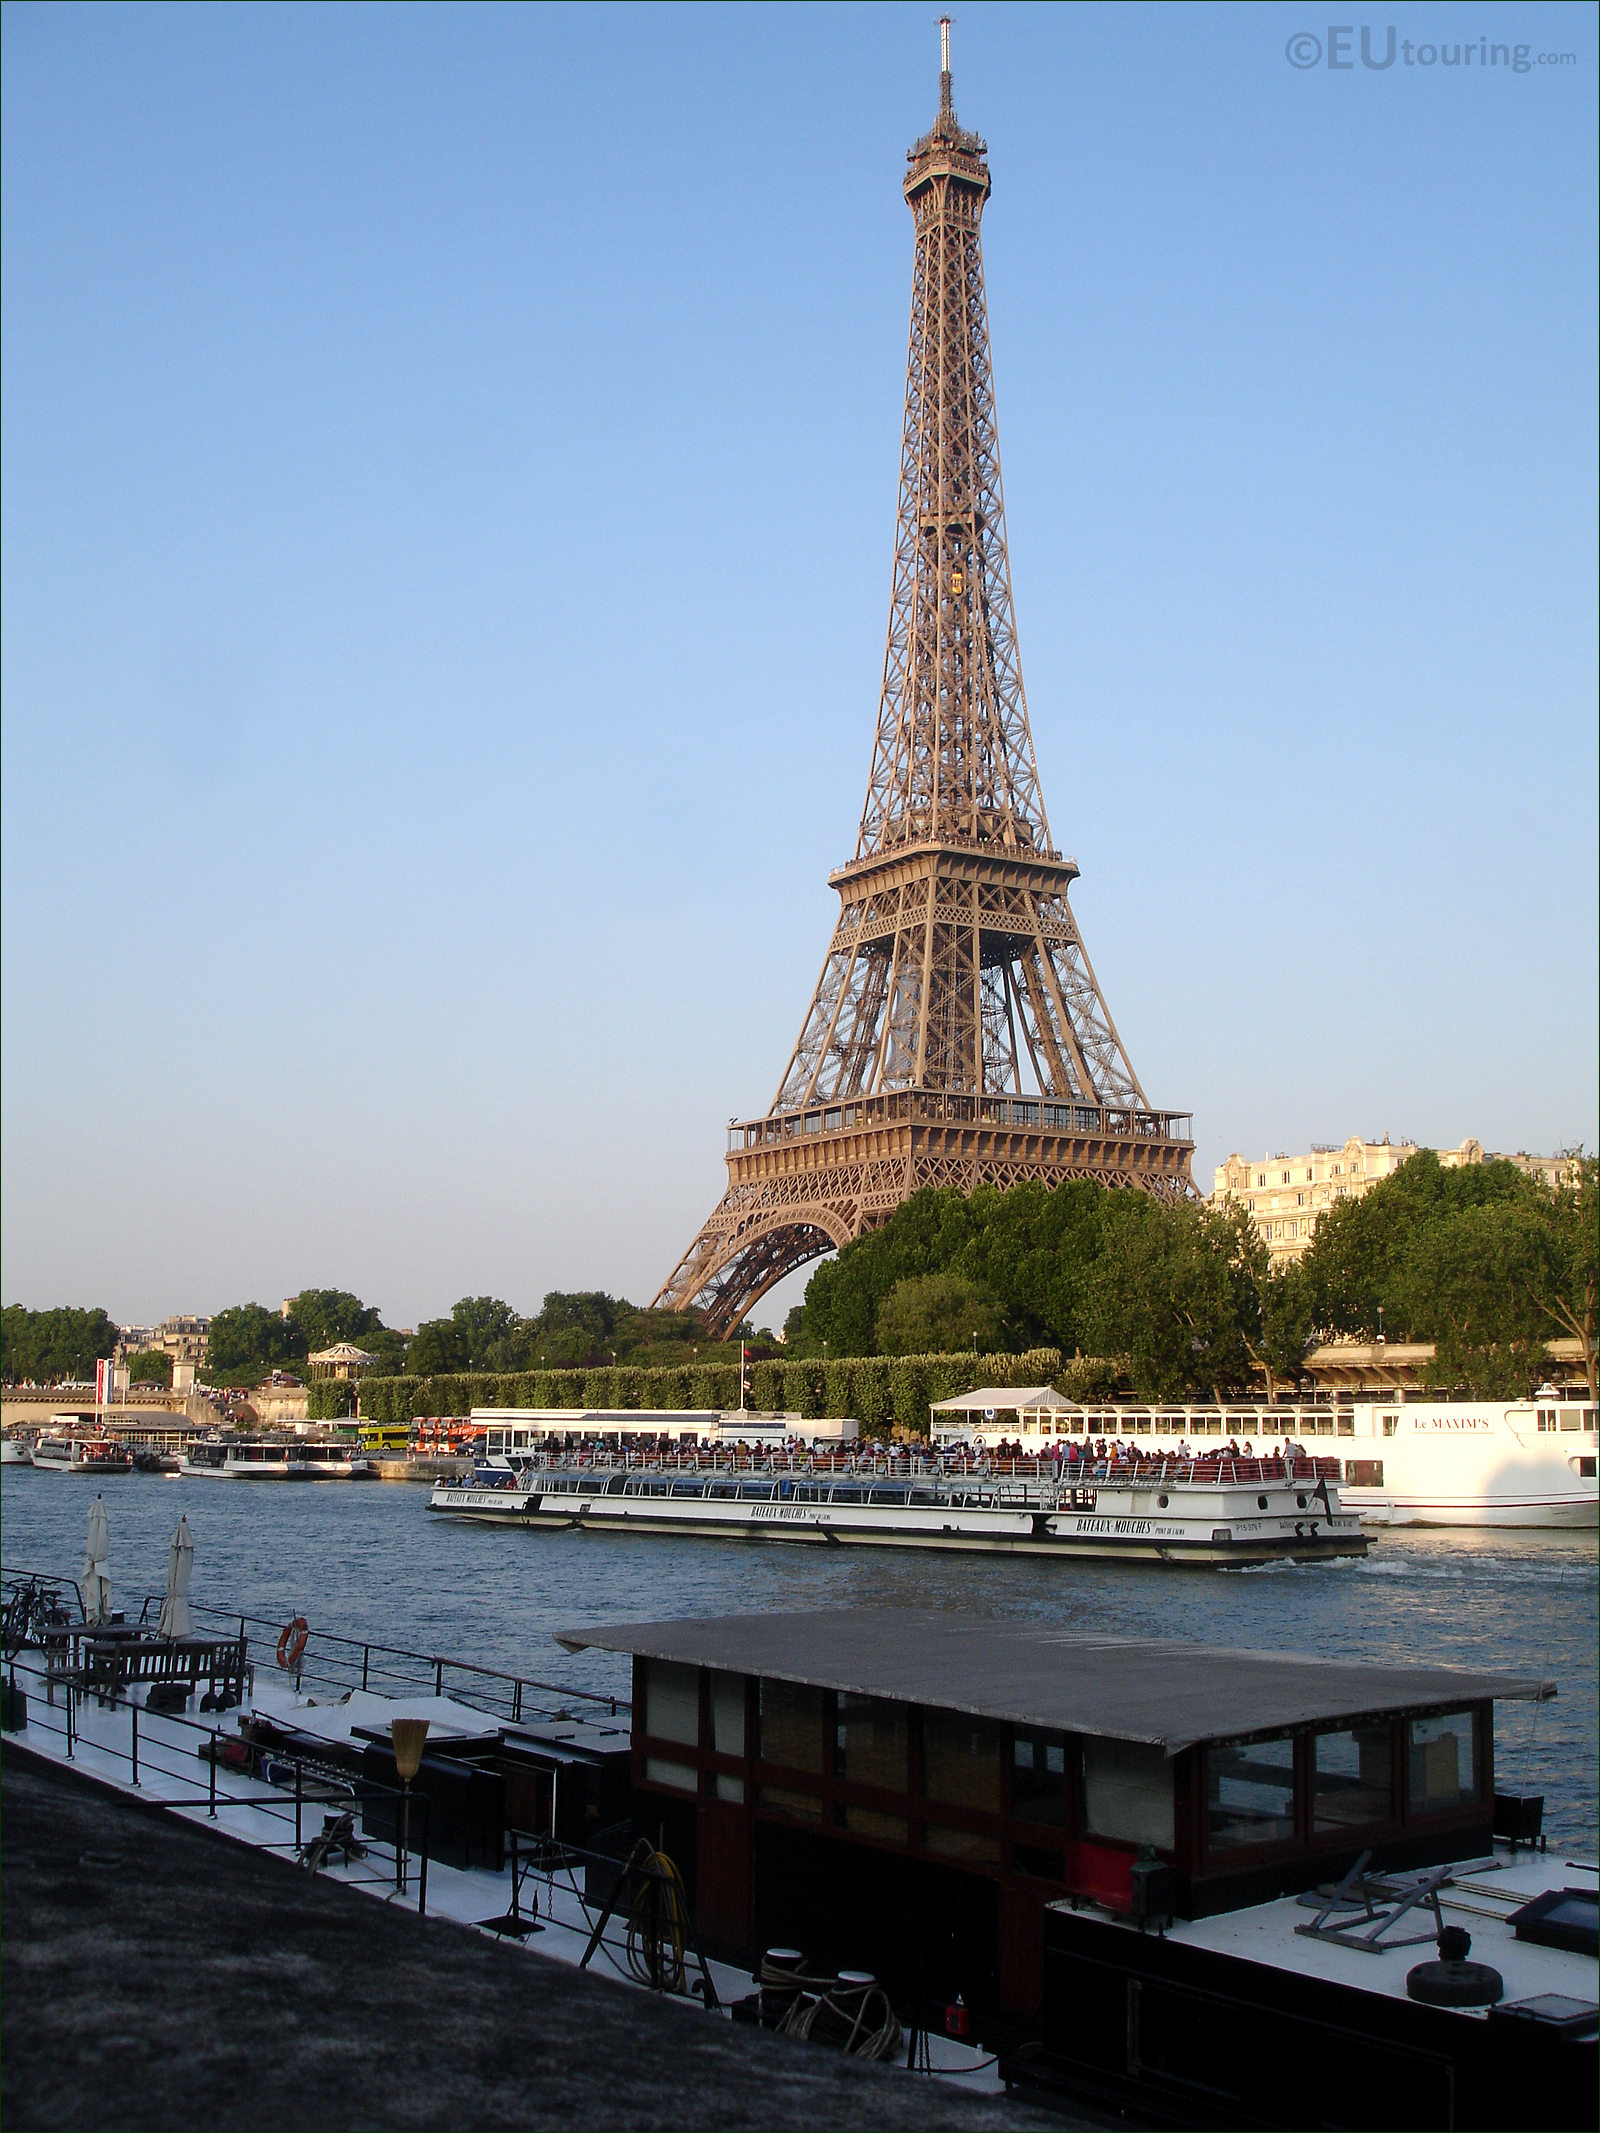 hd photos of the bateaux mouches cruise boats in paris page 1. Black Bedroom Furniture Sets. Home Design Ideas